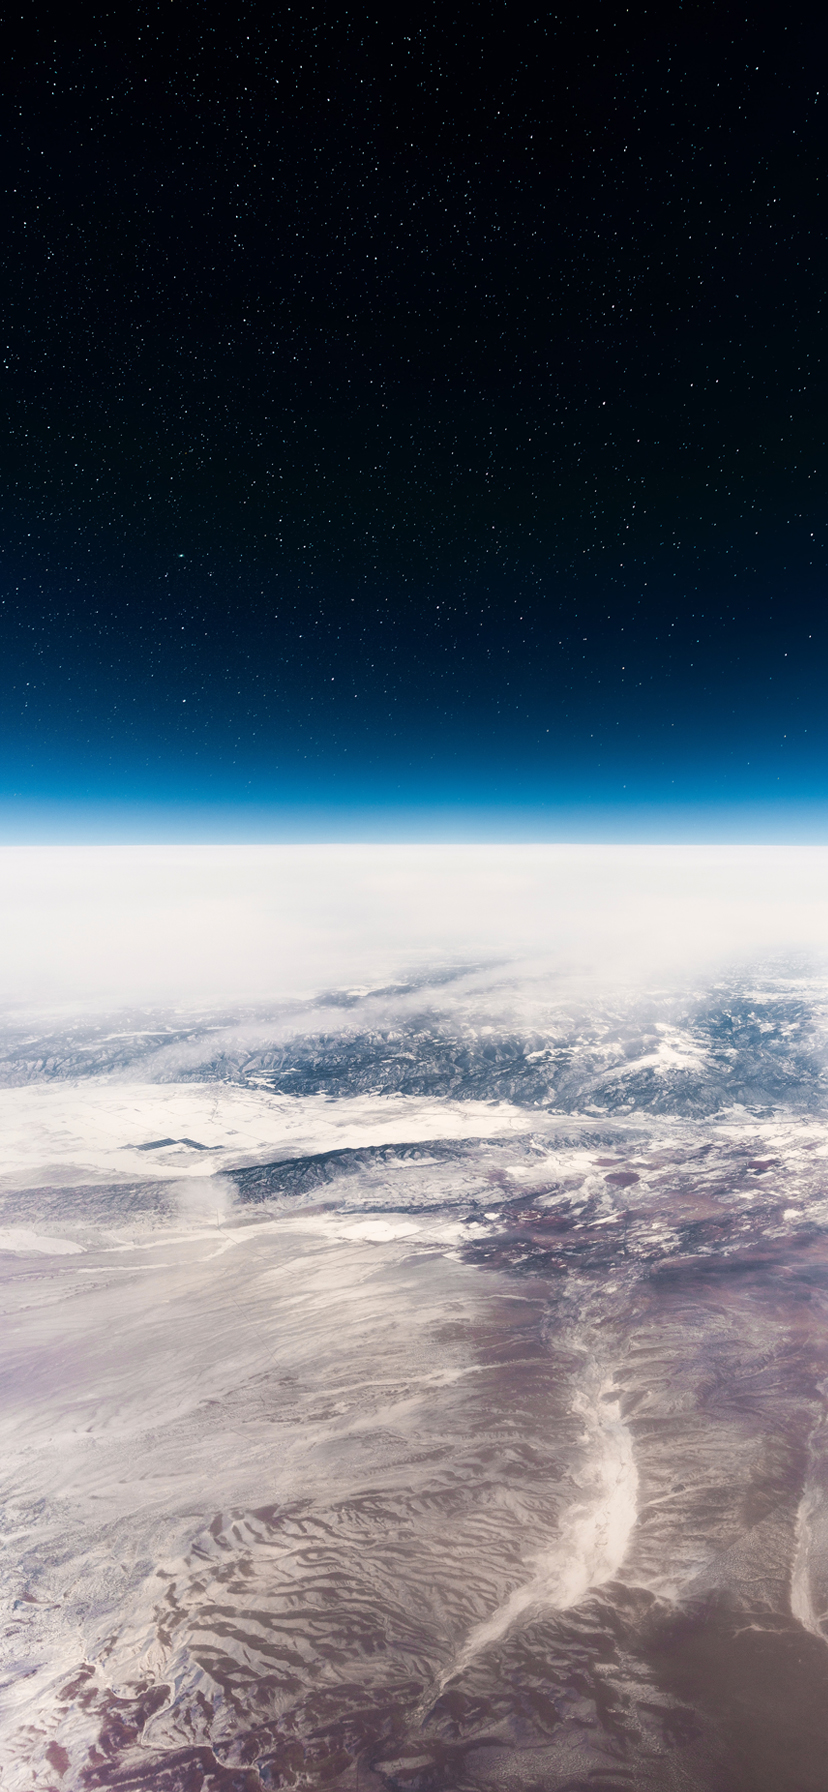 Free iPhone 11 Wallpaper Download 05 of 20 - Outer Space ...